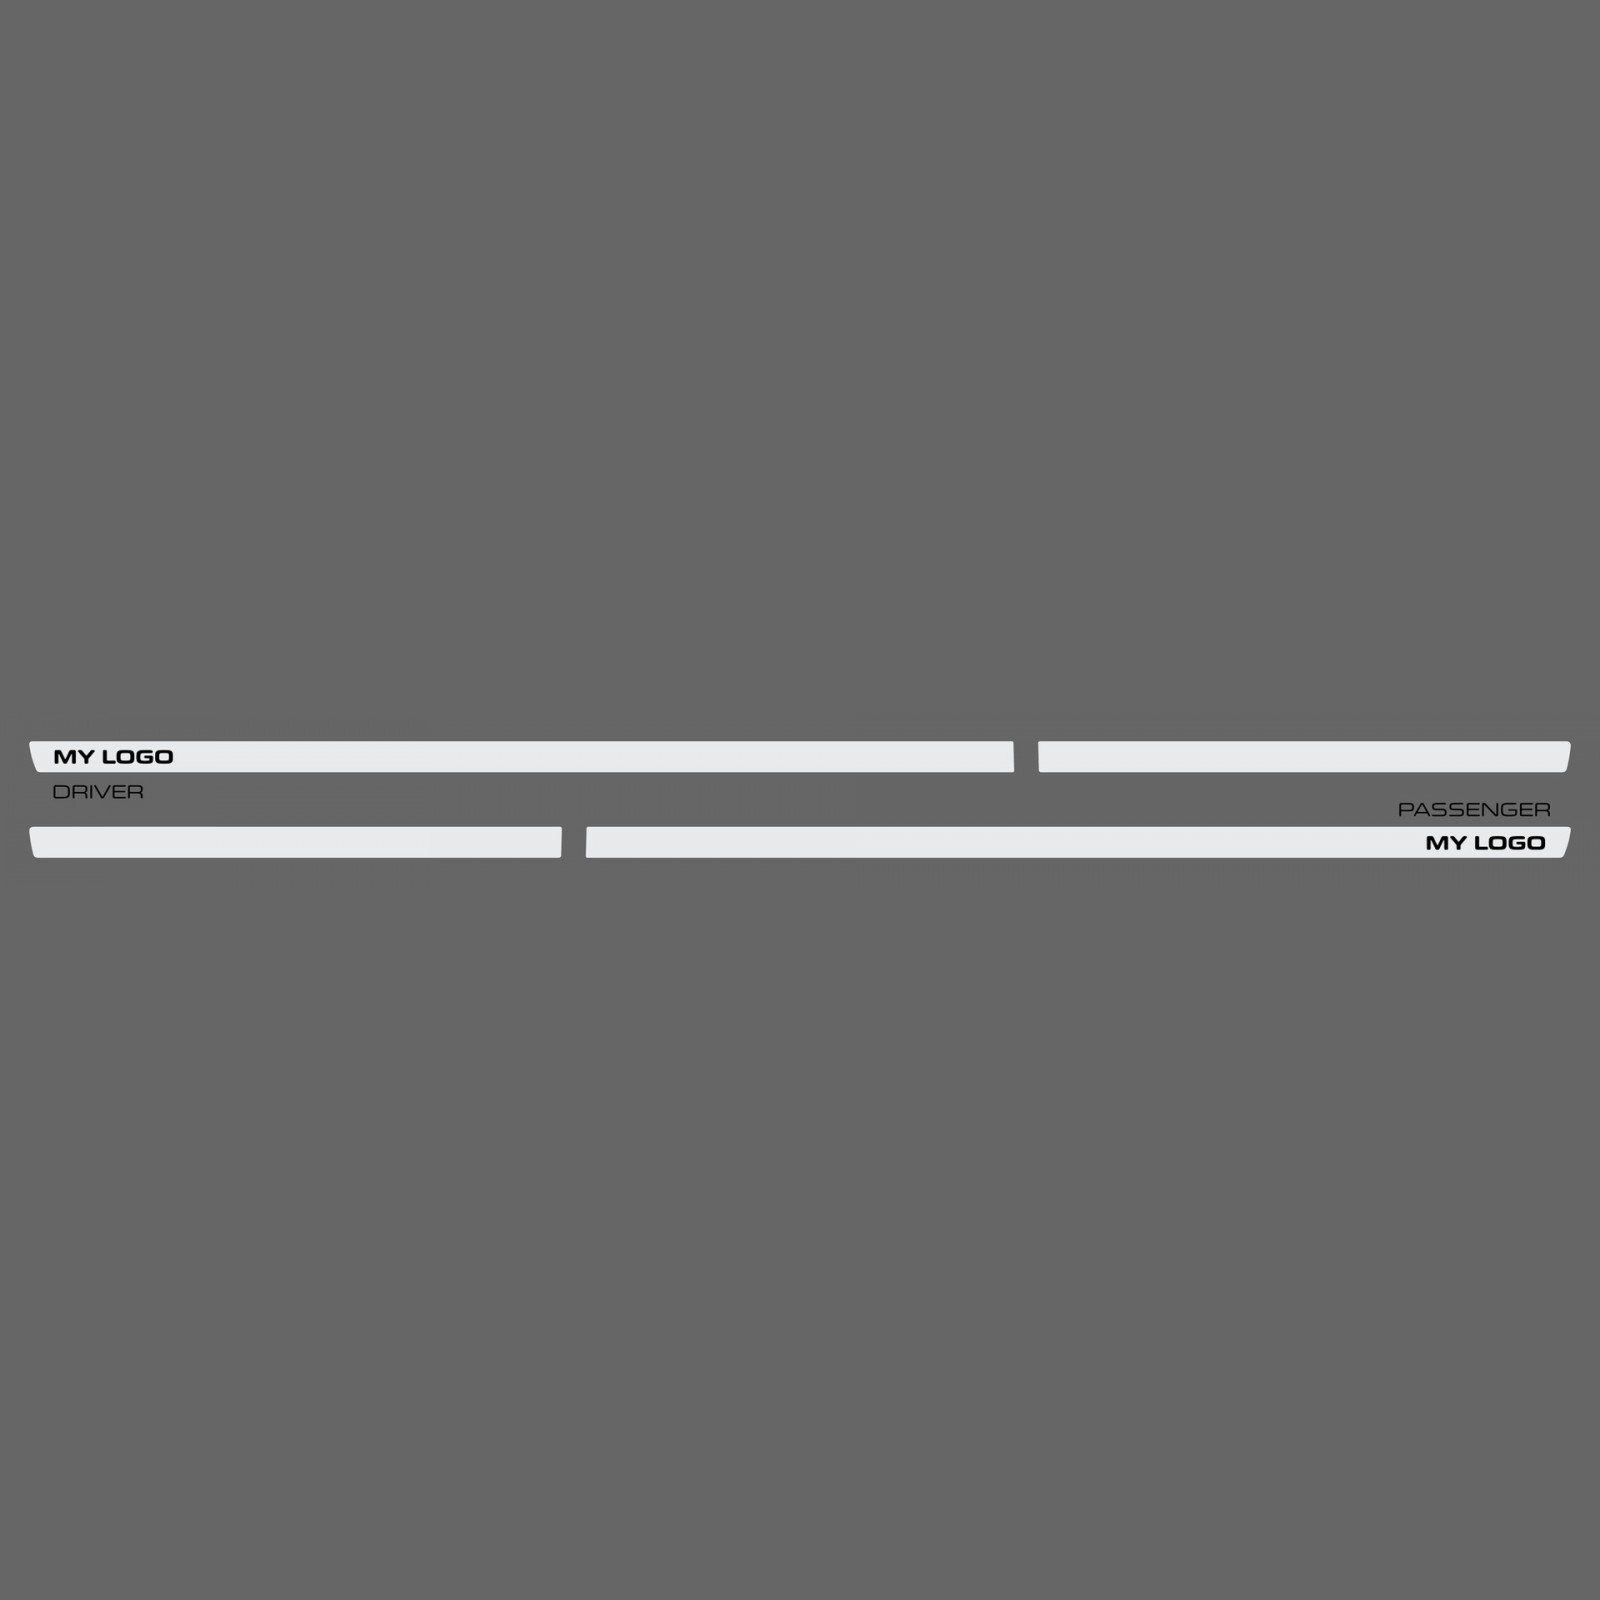 Gmc Canyon Extended Cab Chrome Body Side Molding 2015: Body Side Moldings For 2016 Chevrolet Colorado (Extended